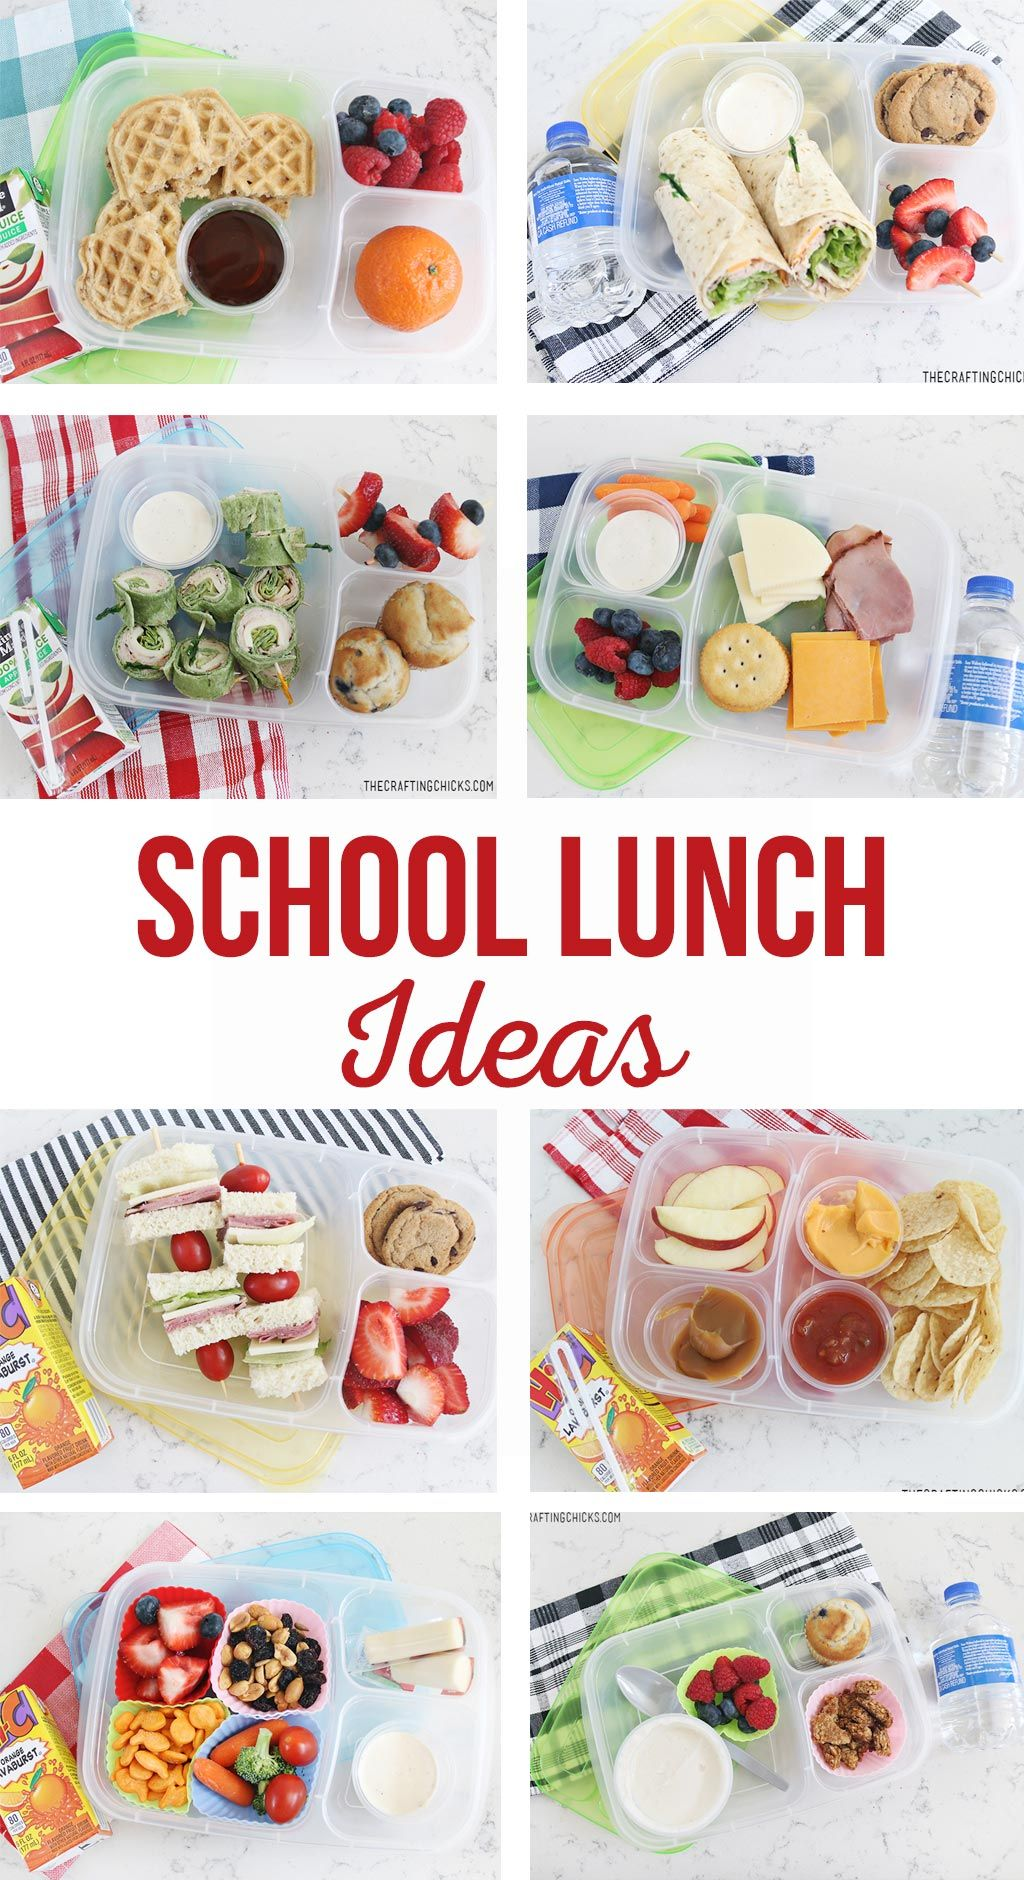 School Lunch Ideas images